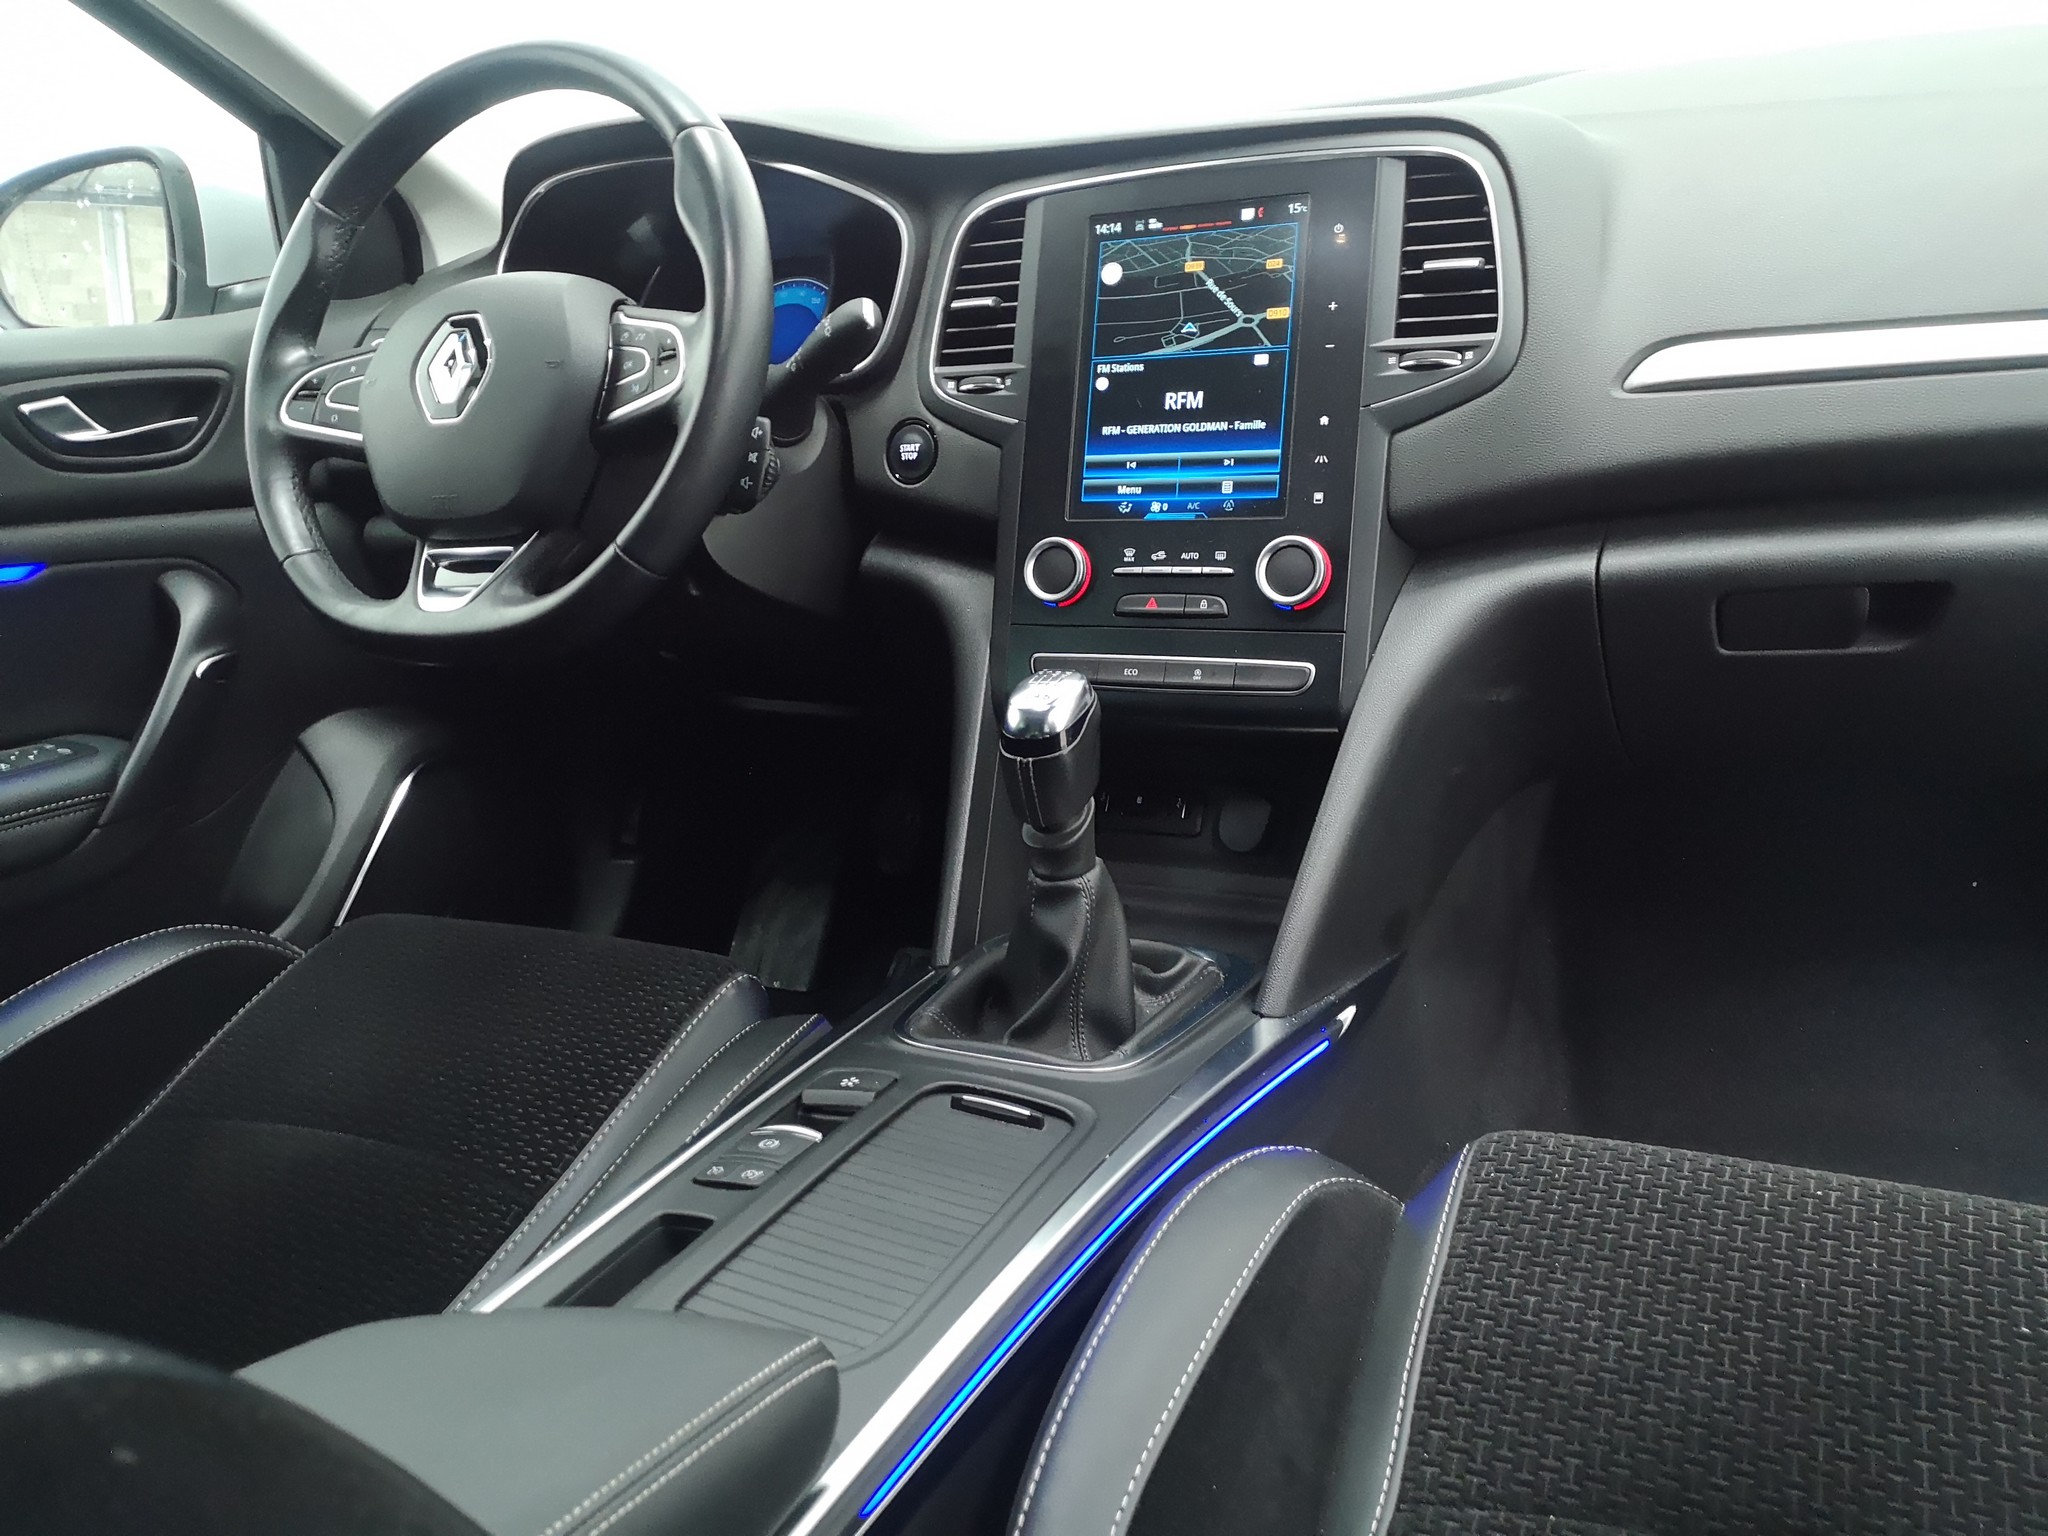 RENAULT MEGANE IV BERLINE 2016 à 14900 € - Photo n°6